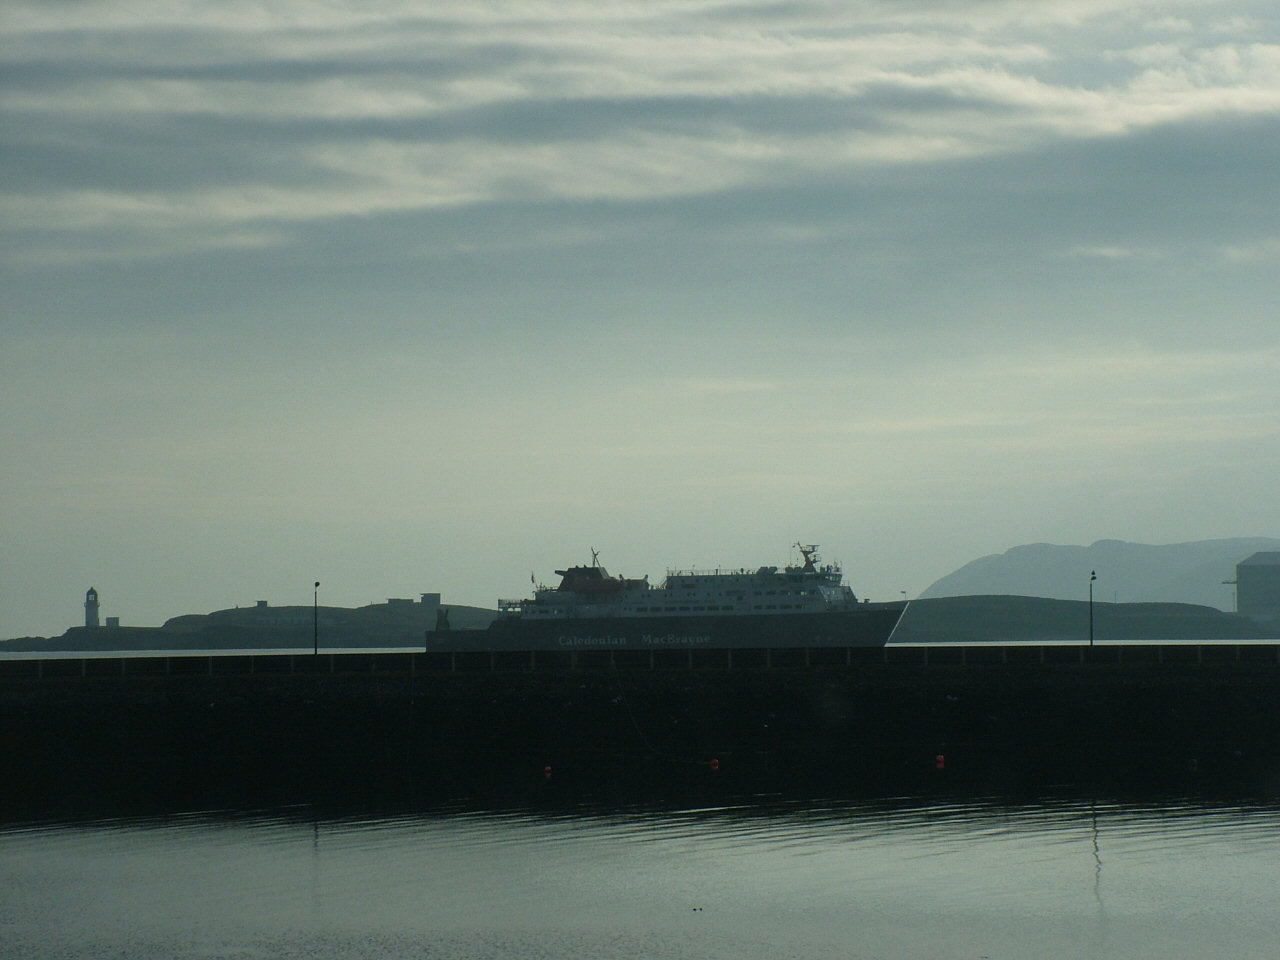 2 Feb: MV Clansman coming into Stornoway in very hazy conditions (13.23)